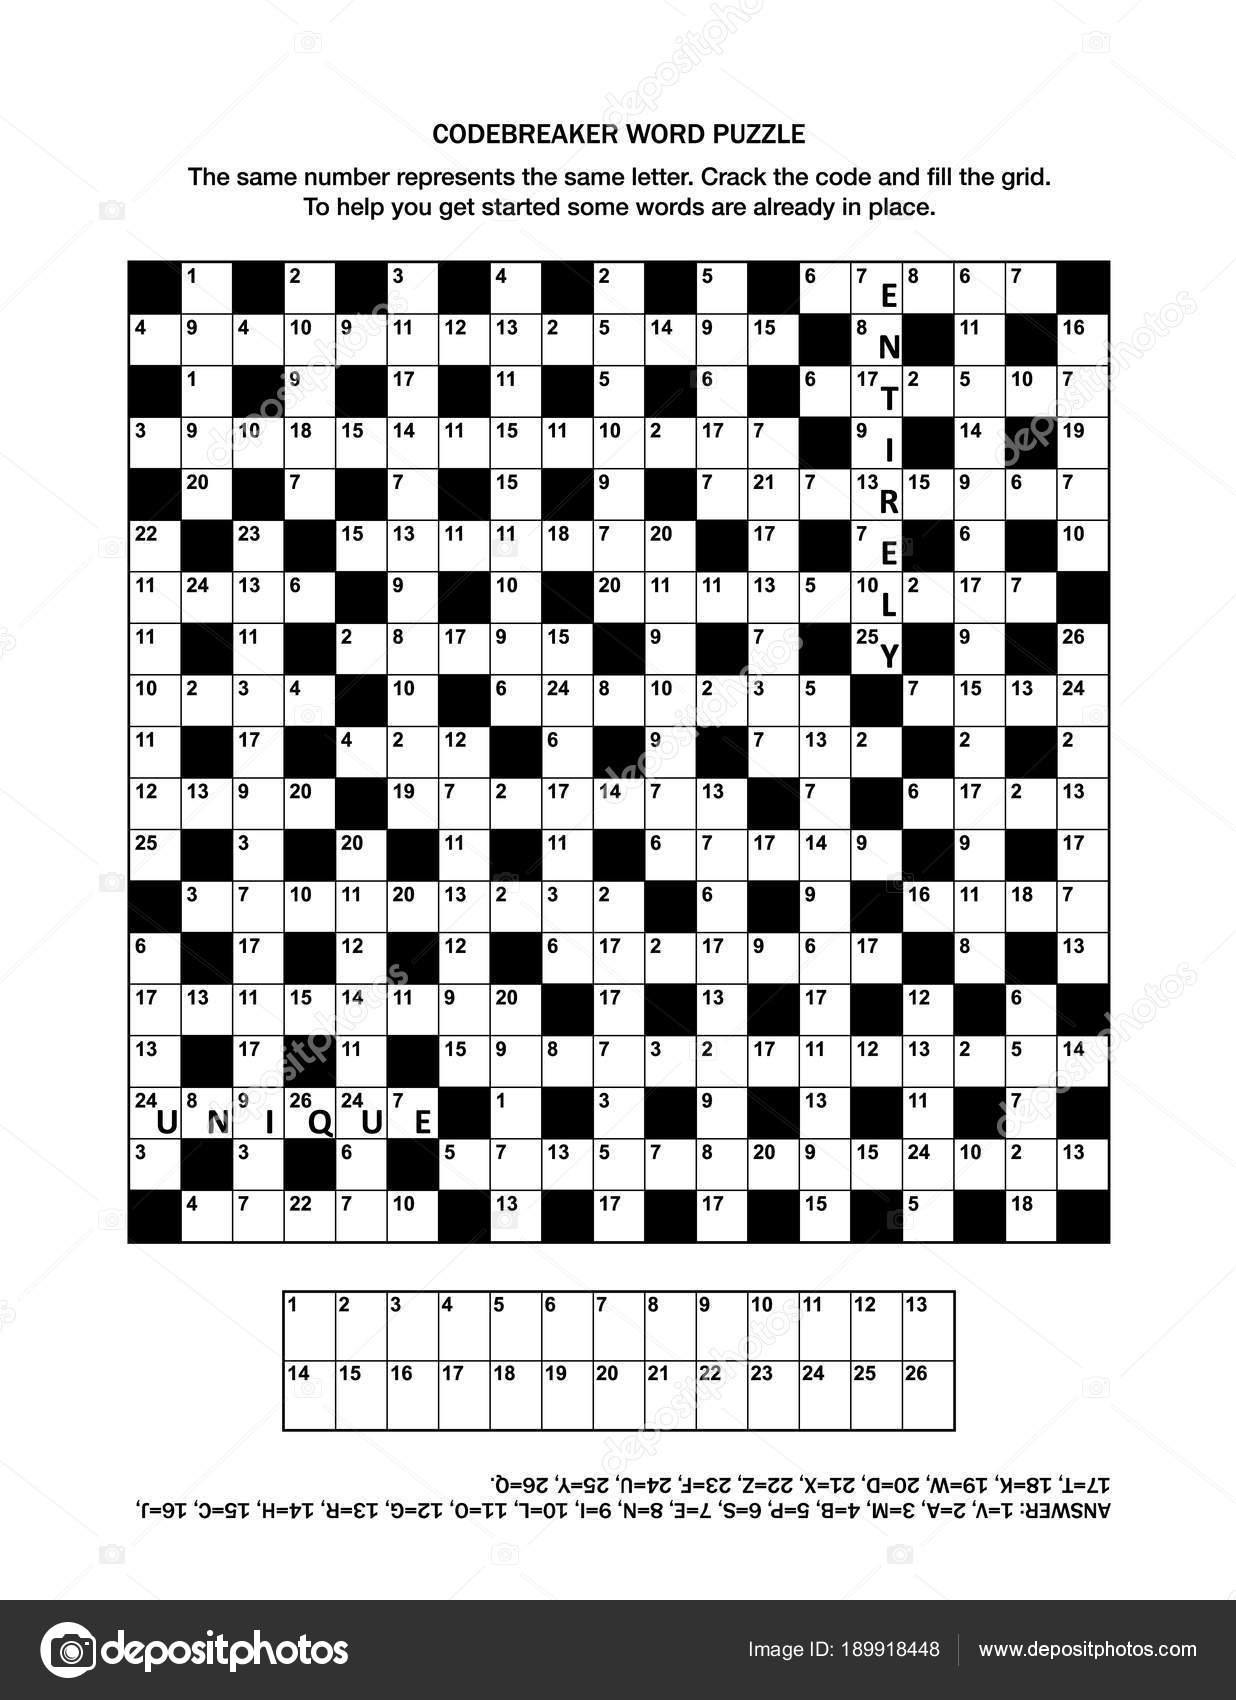 Puzzle Page Codebreaker Codeword Code Cracker Word Game Crossword - Printable Codeword Puzzle